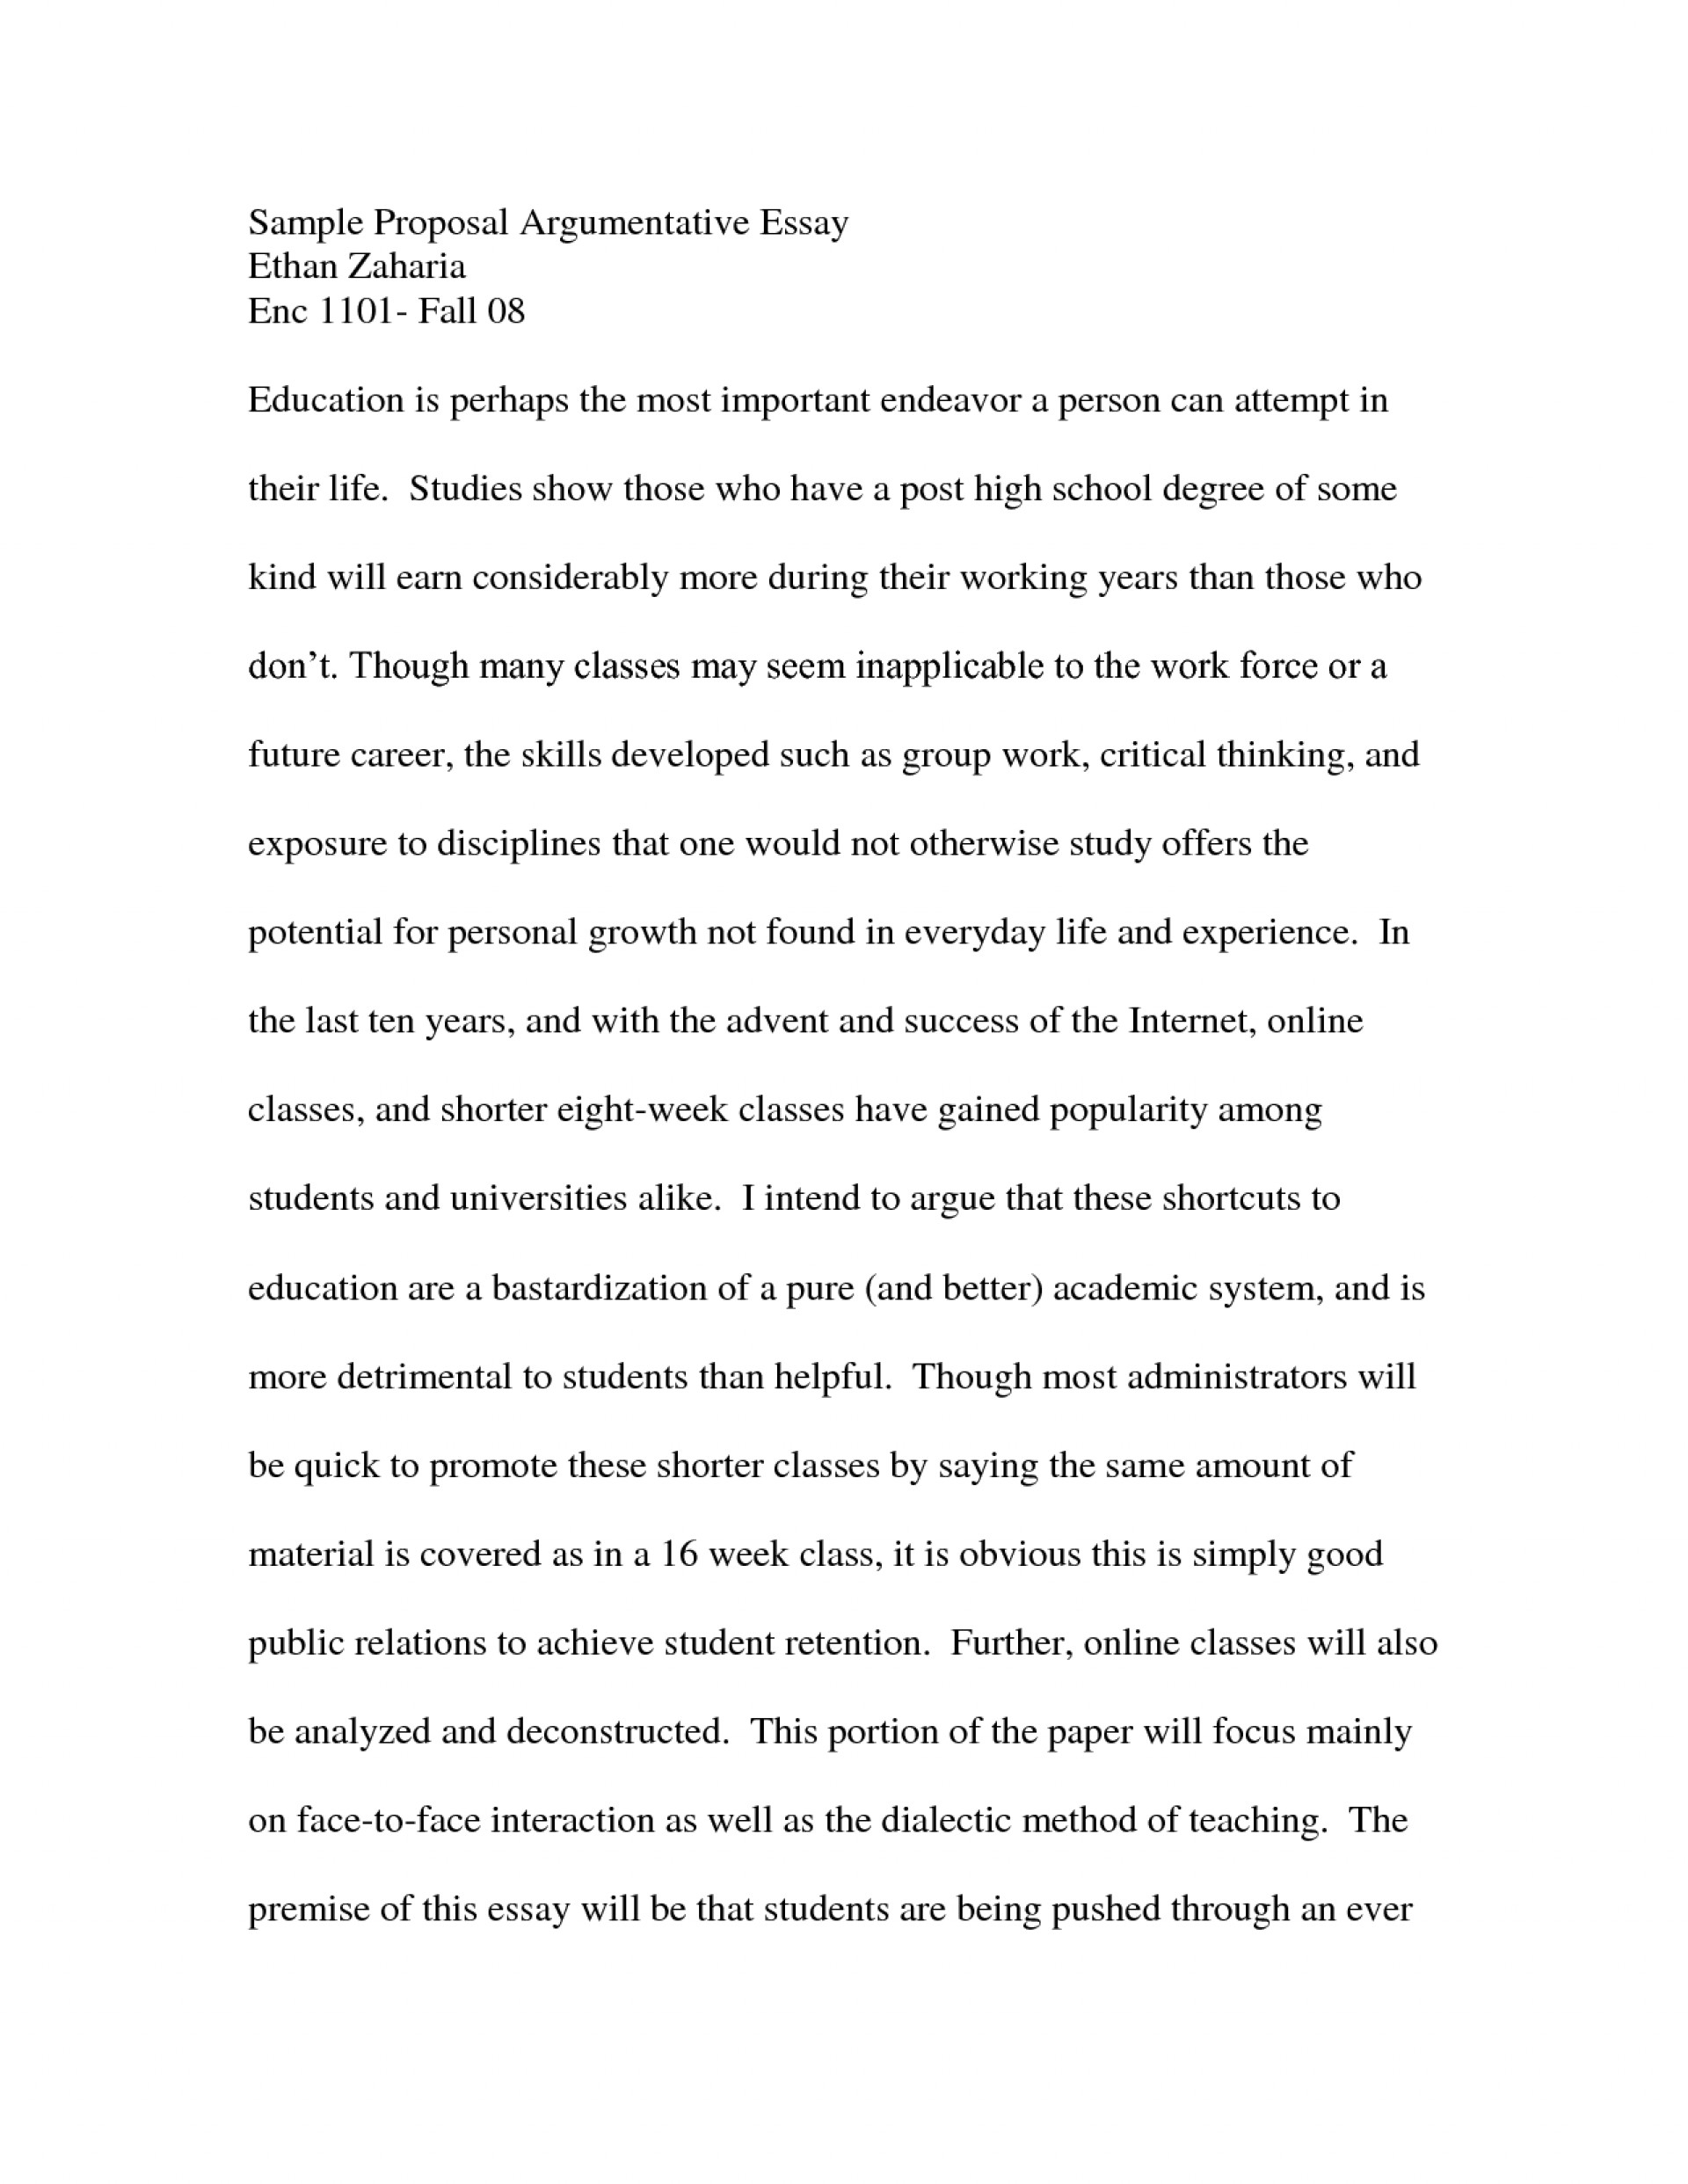 005 Essay Example 3d7hsocgst How To Write An Shocking Proposal For History Mla 1920